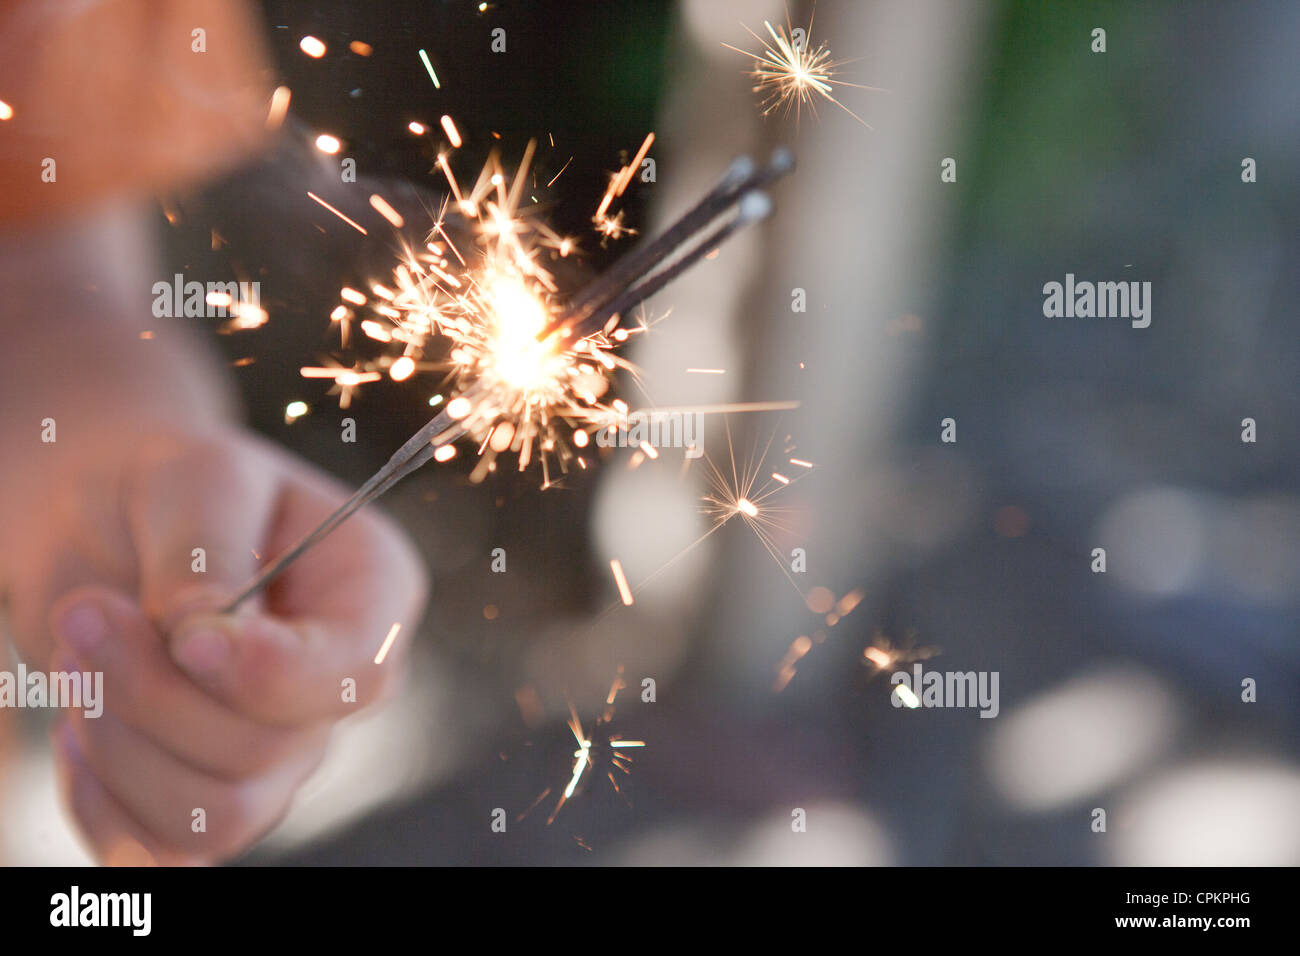 Closeup of a child holding multiple sparklers burning. - Stock Image